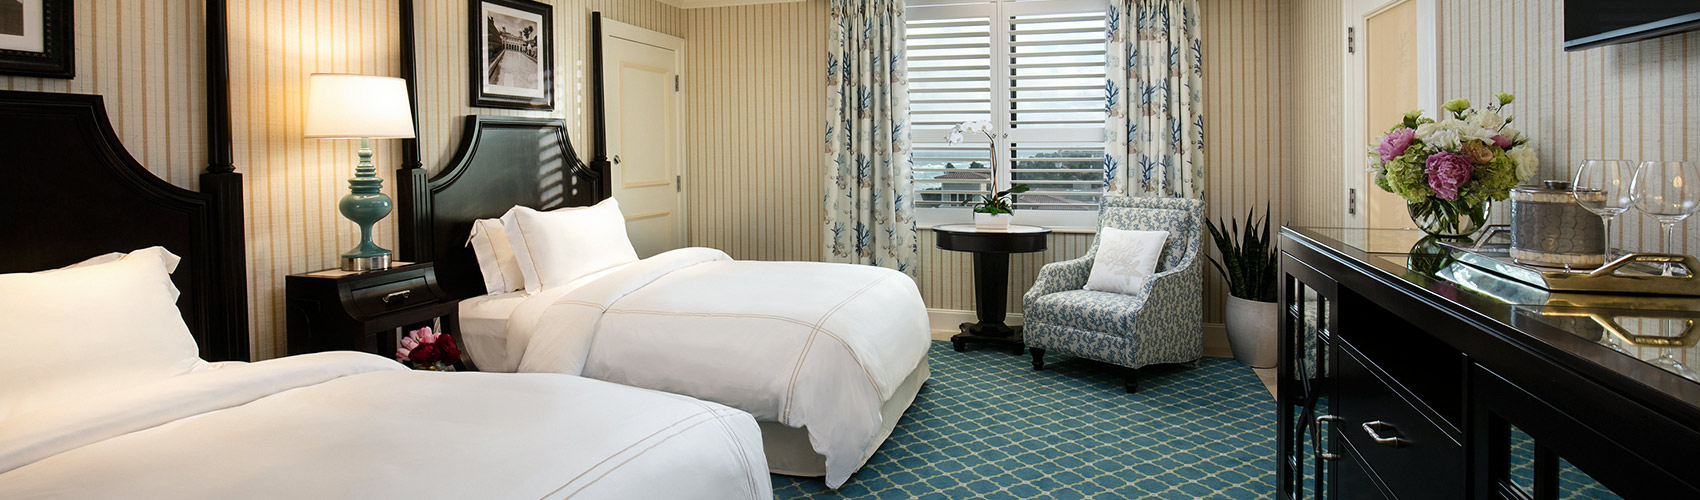 Accessible Guest Room with Resort View double beds